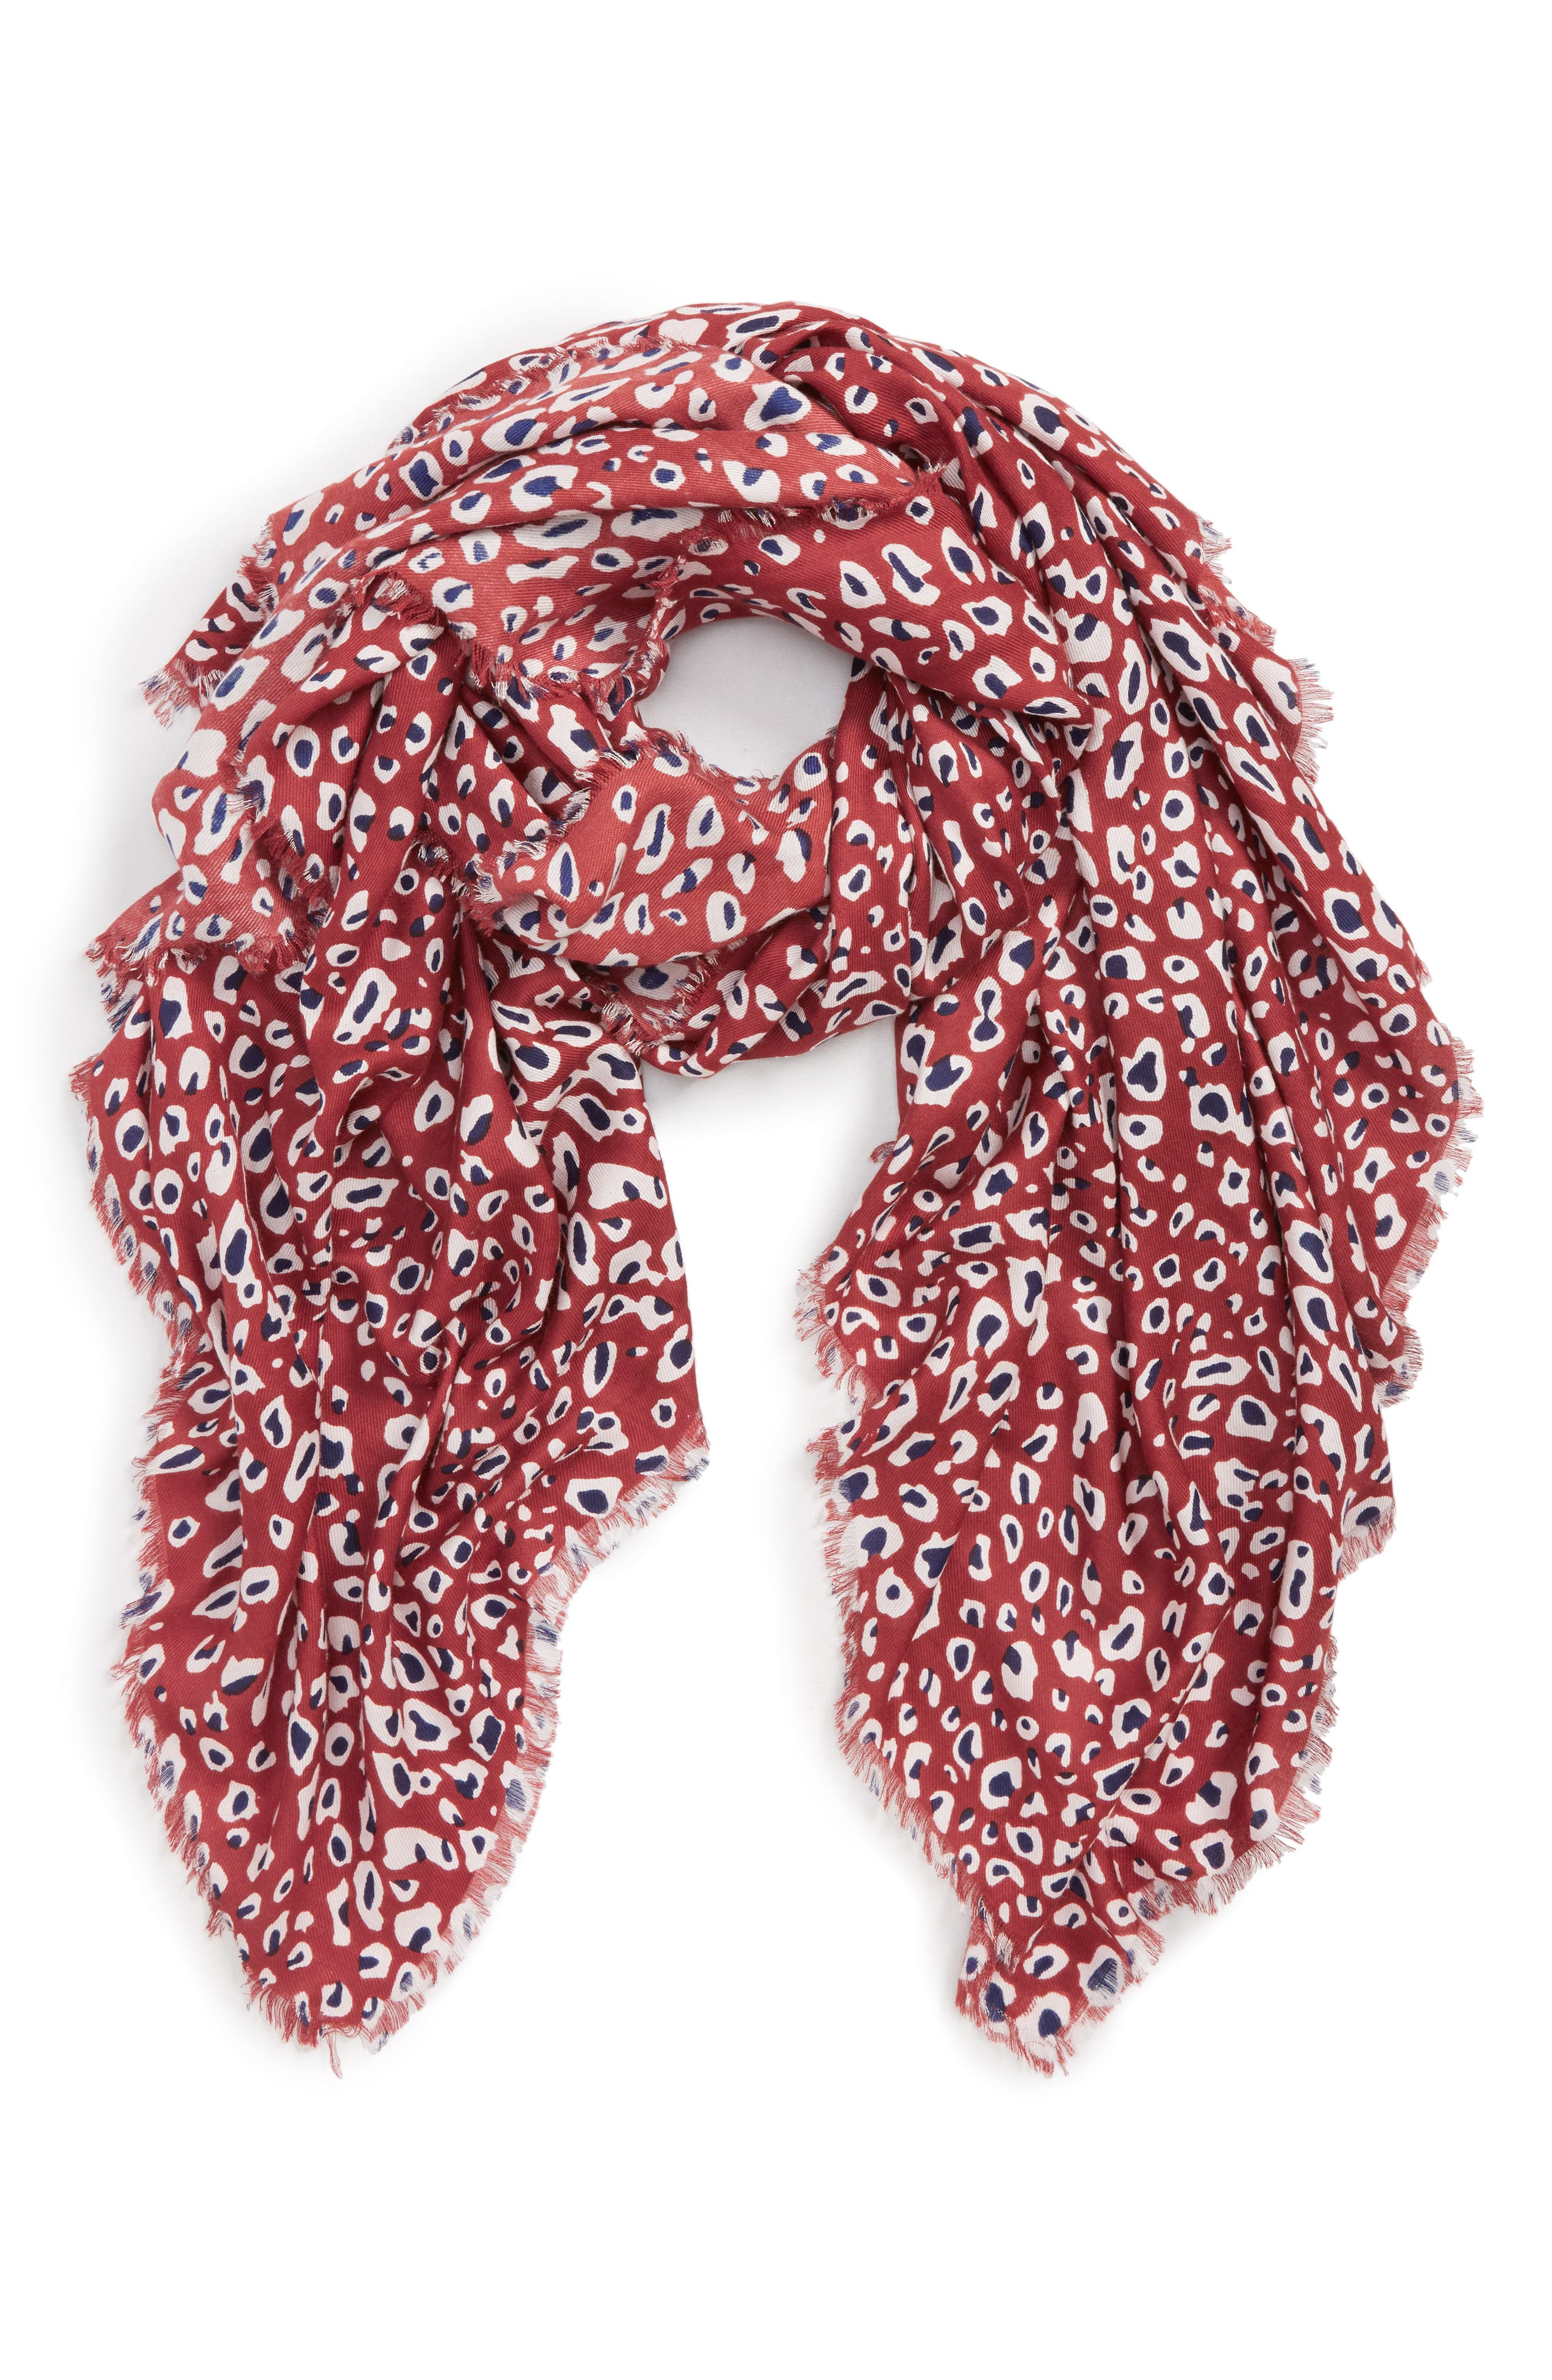 SOLE SOCIETY, Leopard Print Scarf, Main thumbnail 1, color, 600